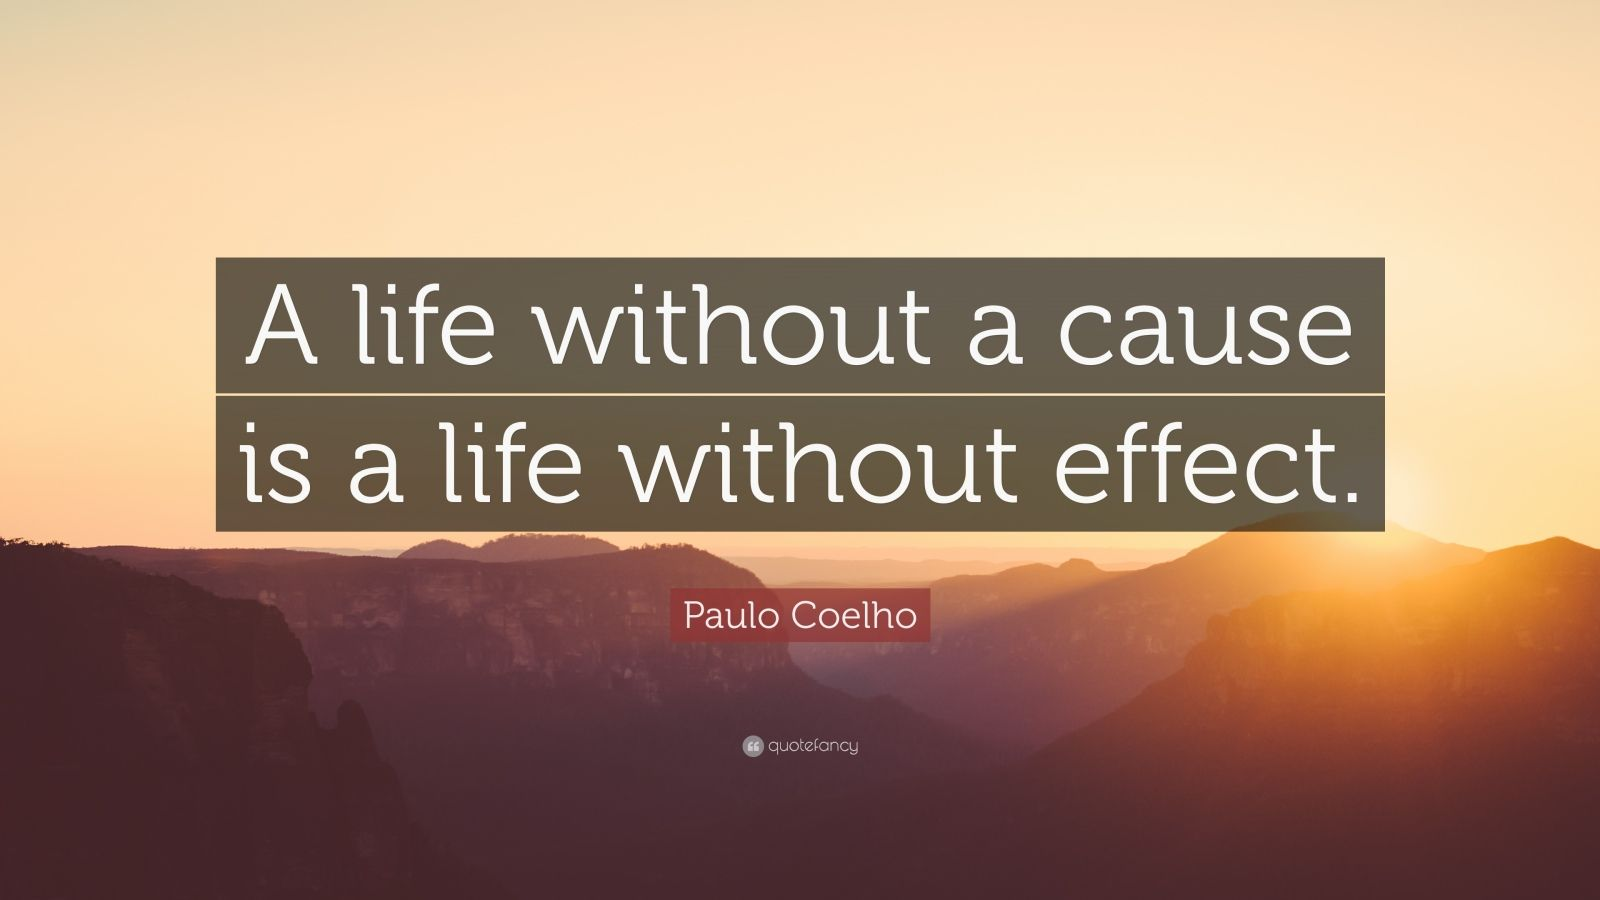 paulo coelho quote   u201ca life without a cause is a life